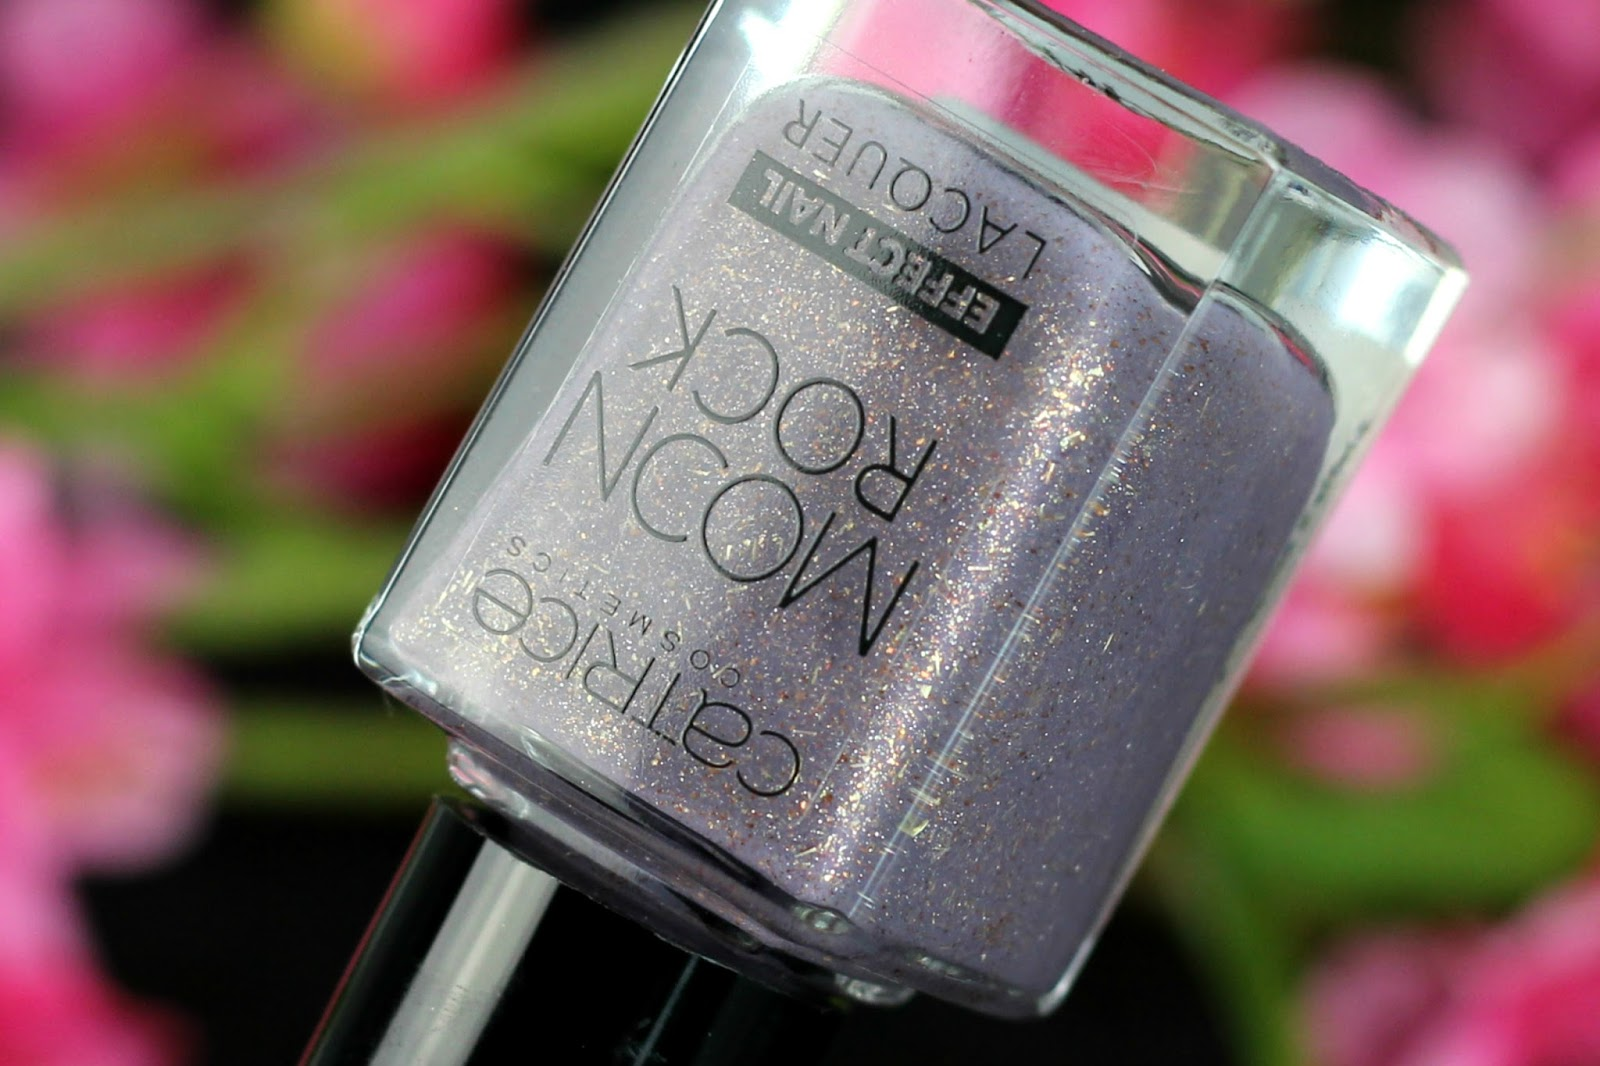 Catrice, Moon Rock Effect Nail Lacquer, review, swatches, tragebilder, neues sortiment, effect nail lacquer, moon rock, herbst, 2016, nagellack, nailpolish, glitzer, moonlight berriage, magical bluelight, drogerie,